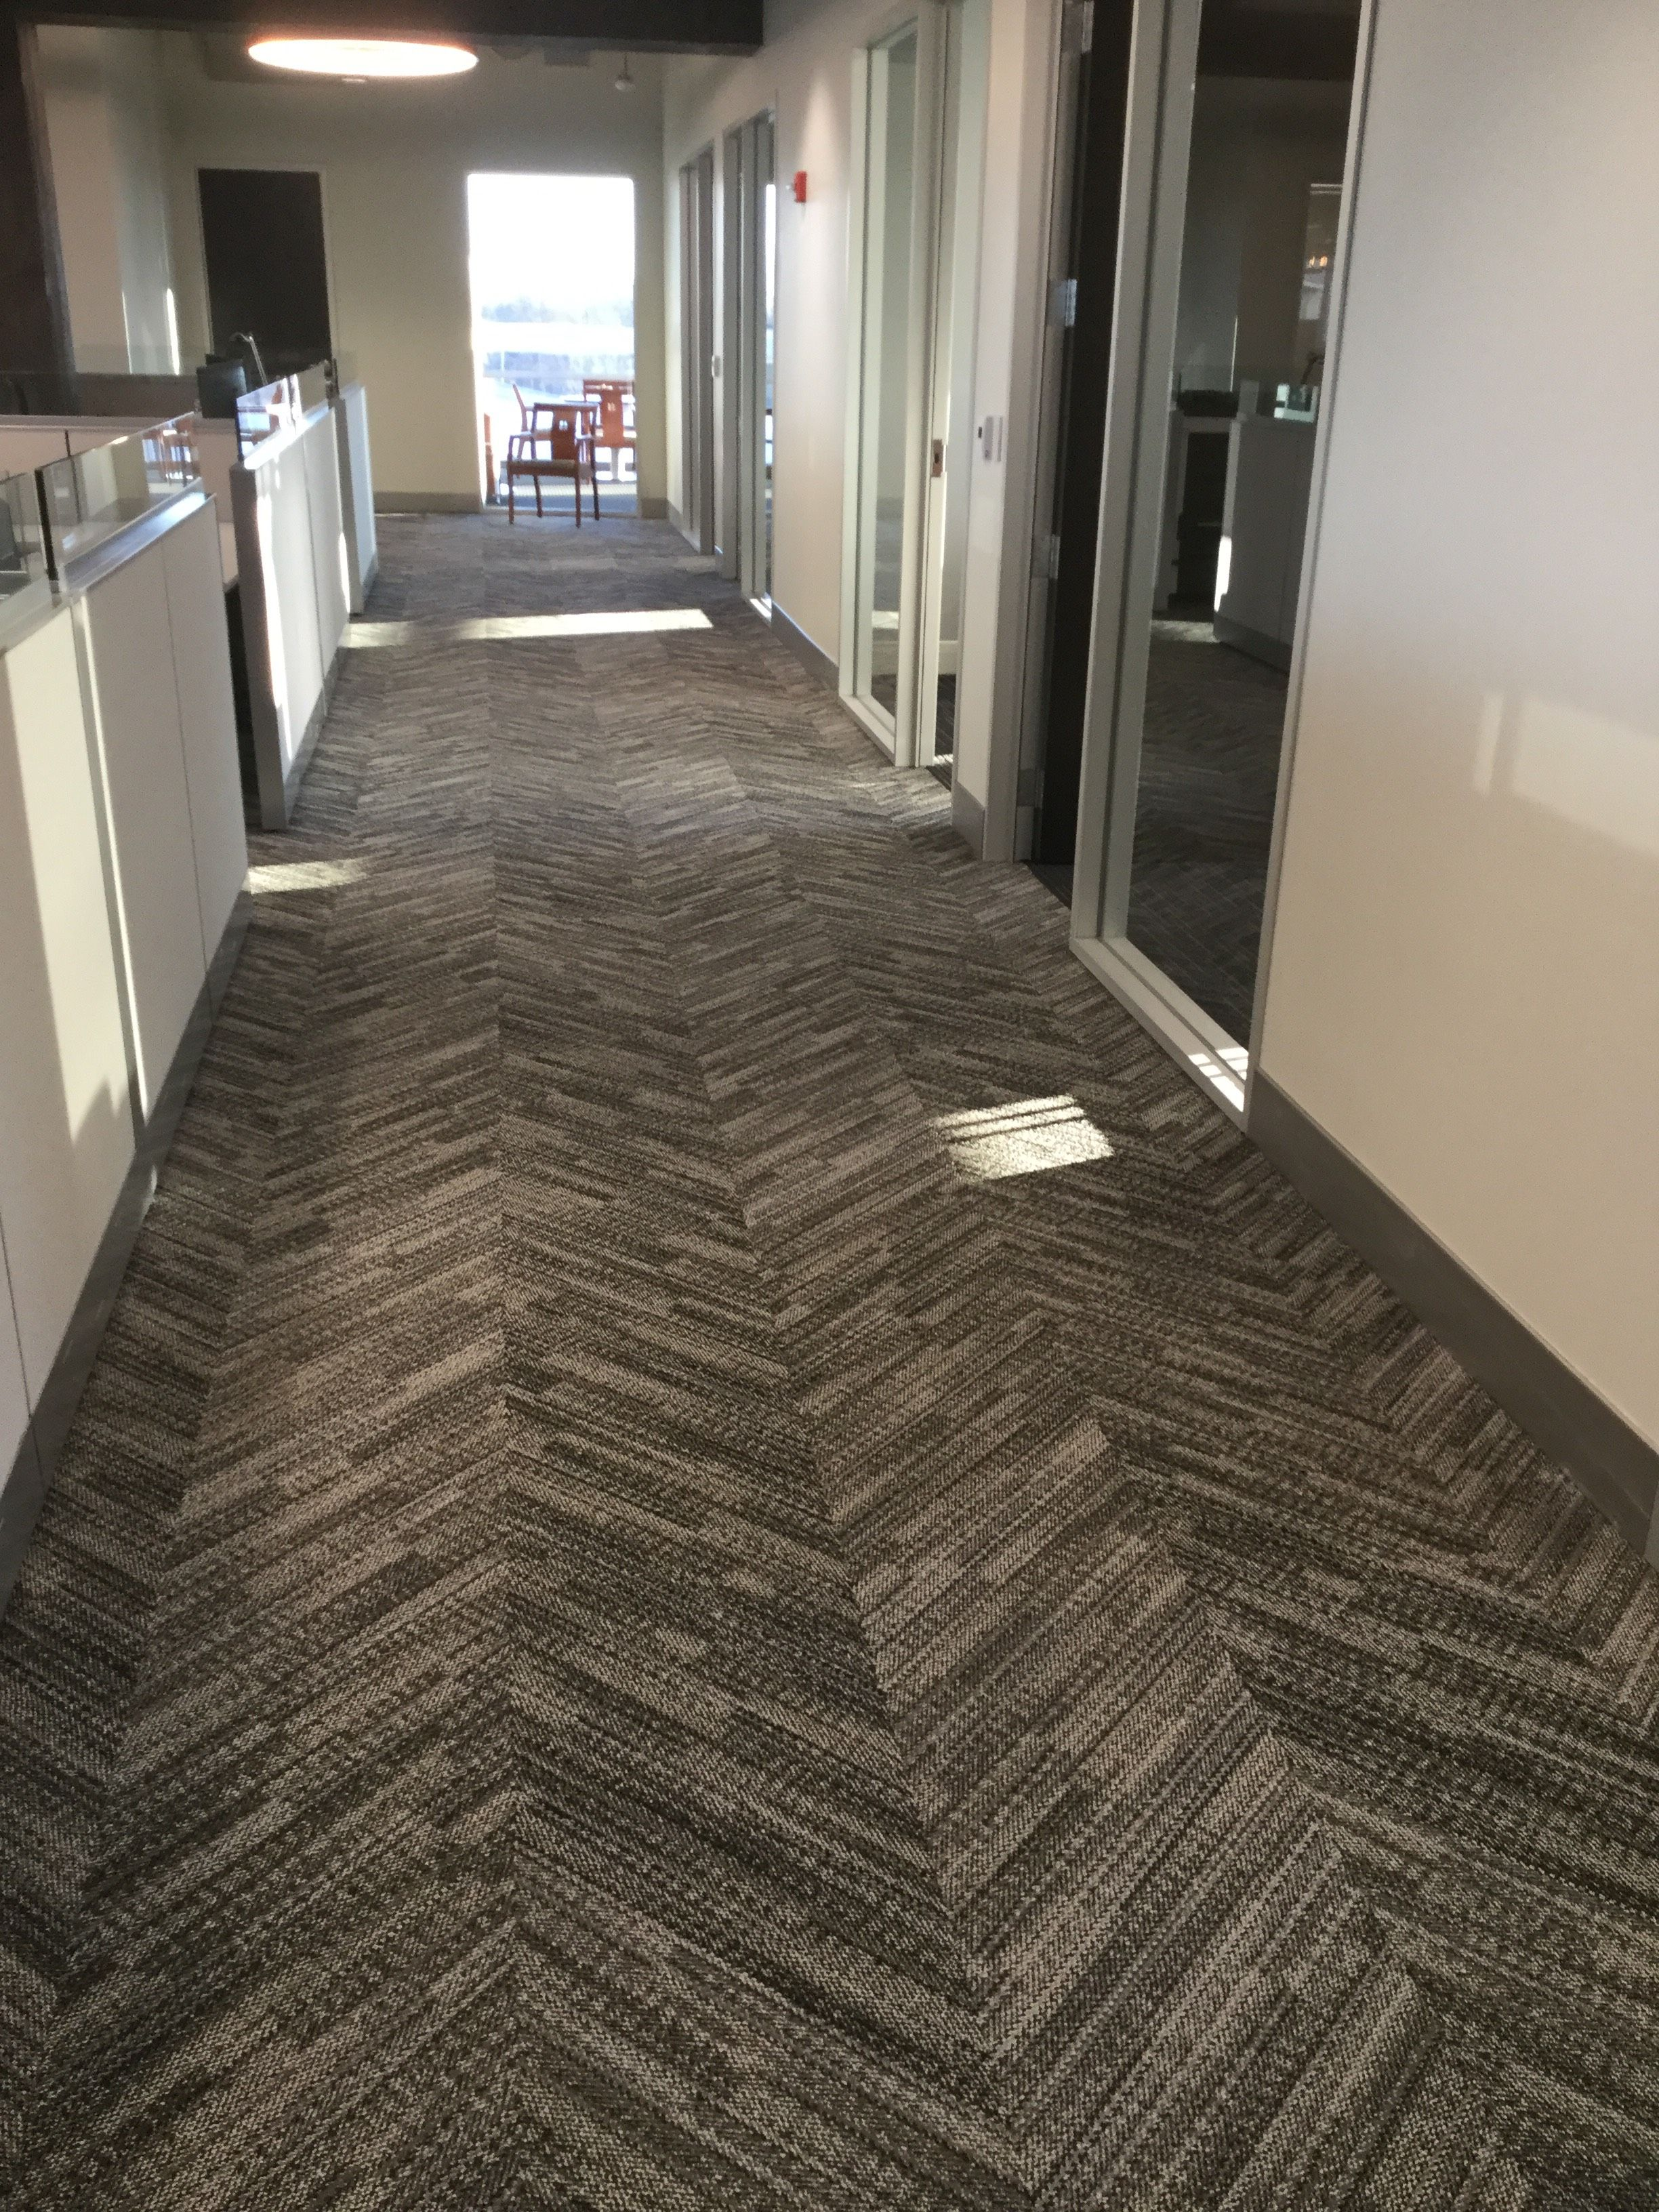 Patcraft S Fabrix Facet In Color 590 As Shown At An Install At Braden Business Systems Headquarters Commercial Carpet Tiles Commercial Carpet Transition Strips